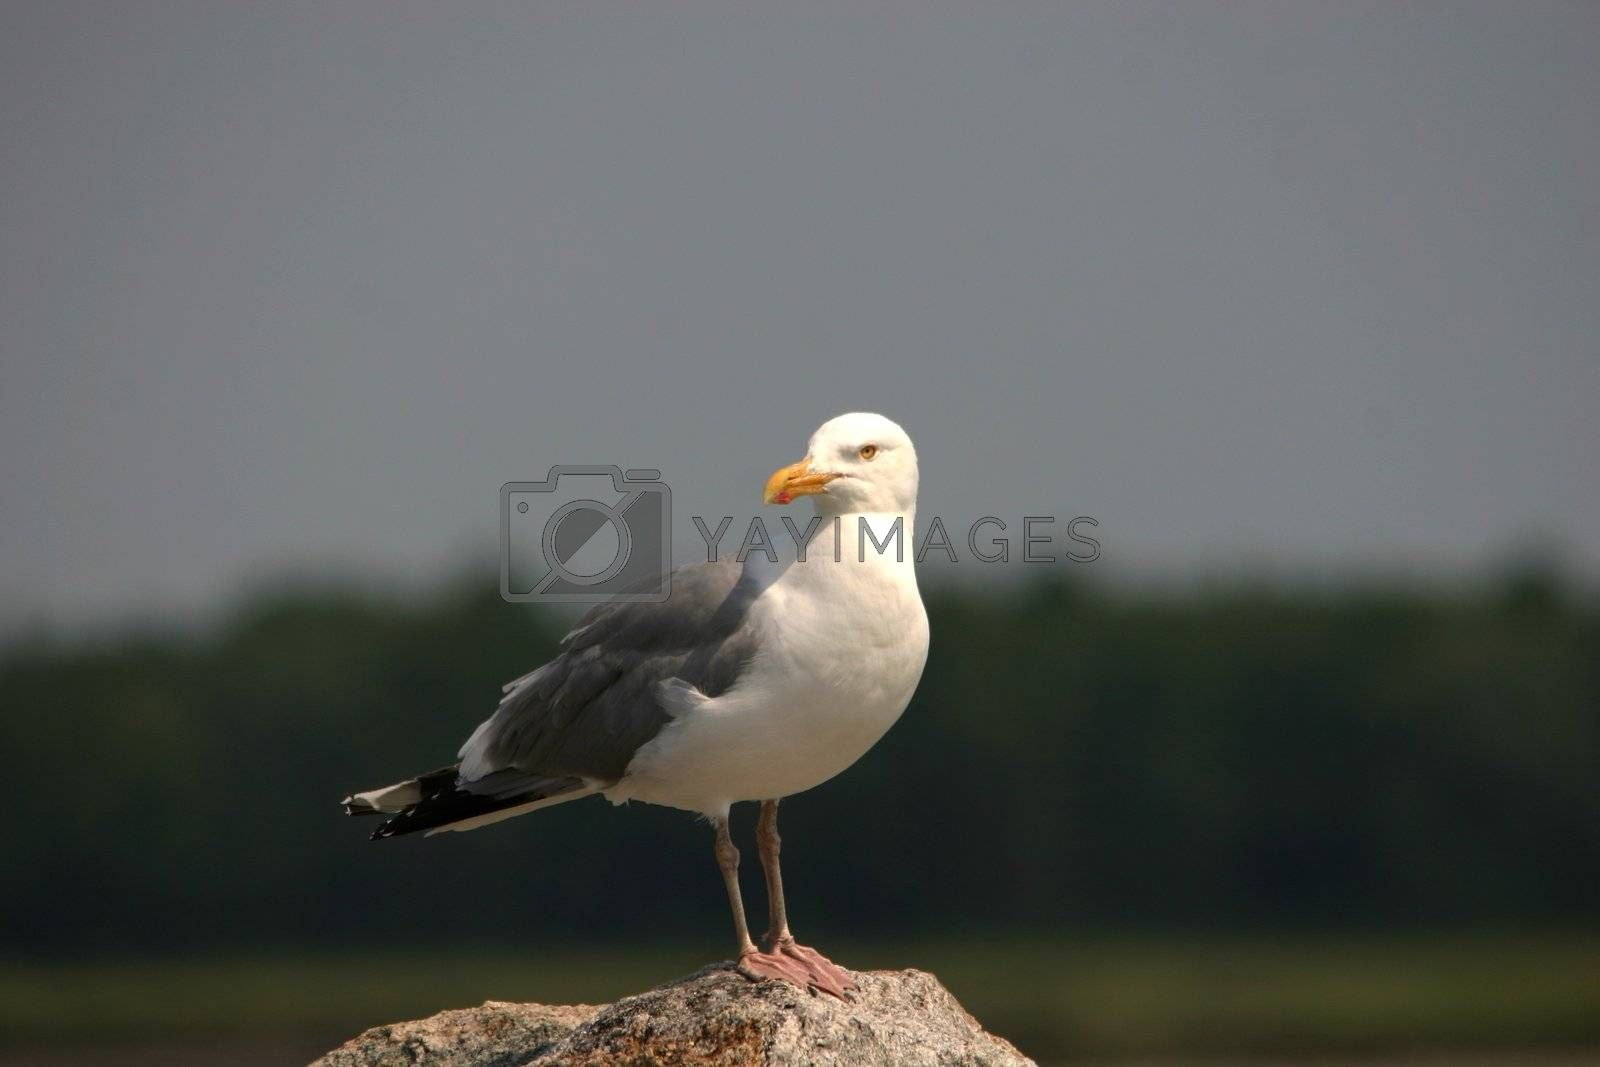 Seagull perched on a rock at the ocean